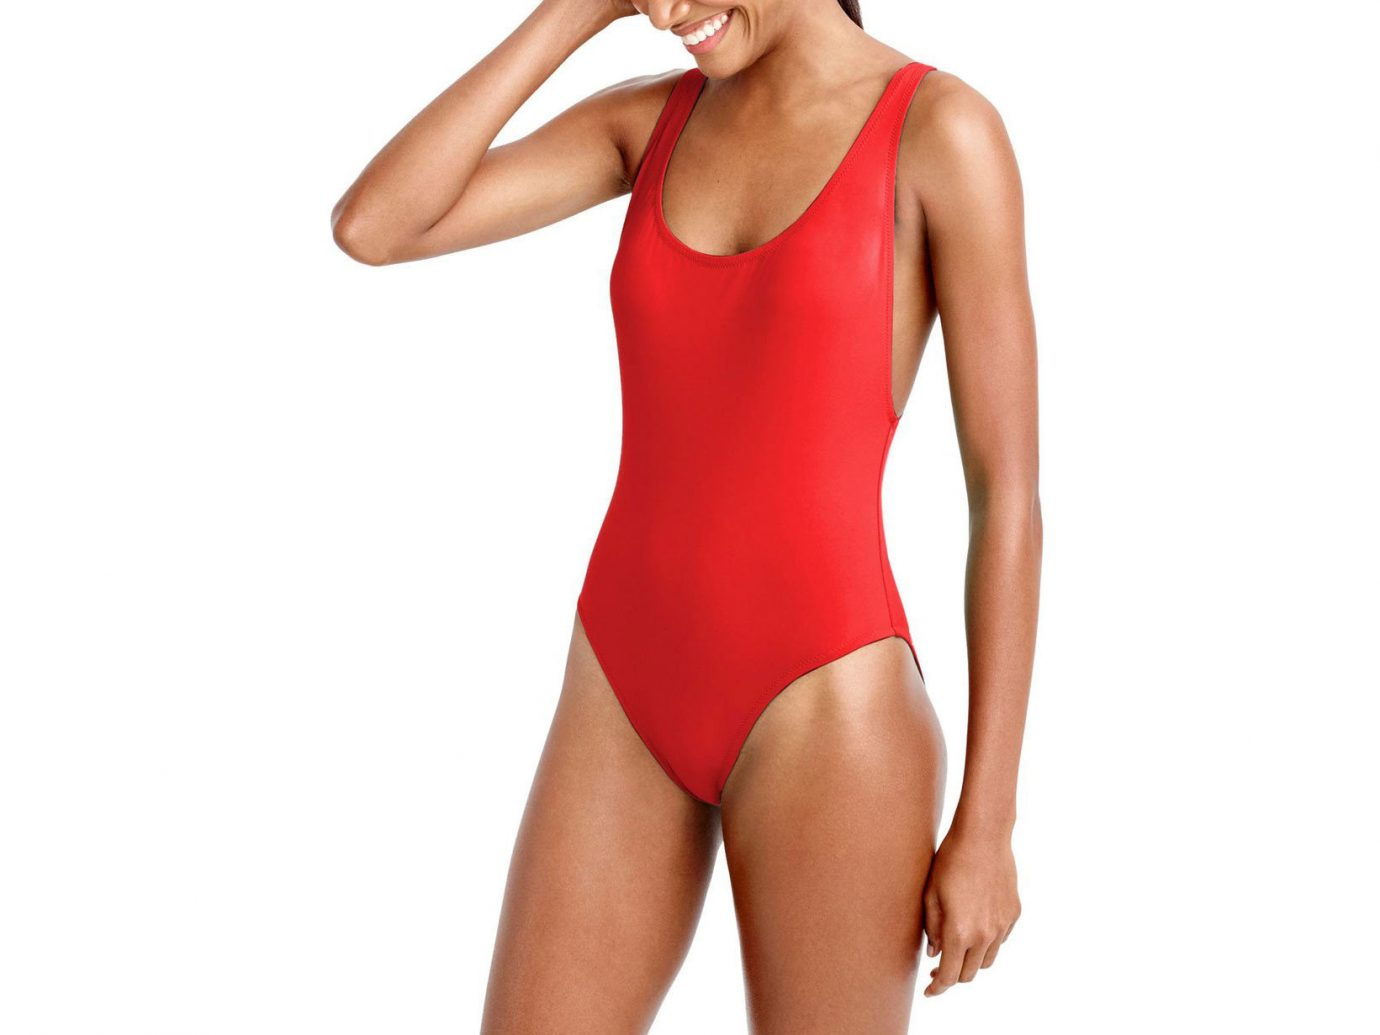 Style + Design woman person clothing swimsuit dress one piece swimsuit swimwear maillot female active undergarment beautiful sports uniform muscle player sportswear arm posing lady swimsuit bottom leotard briefs pretty